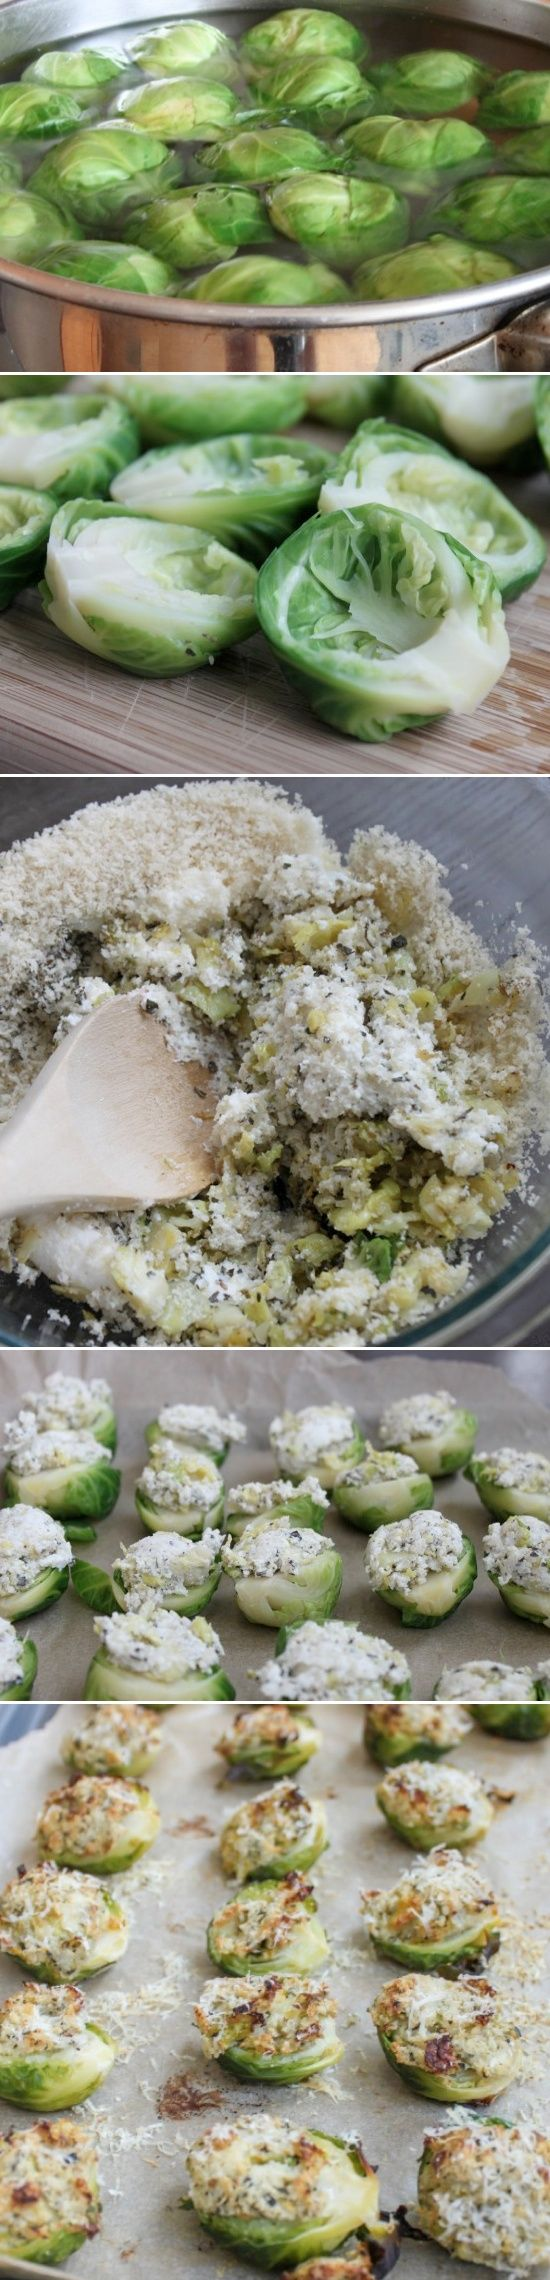 Herb Parmesan Stuffed Brussels Sprouts @Jacky Gaer you should make these